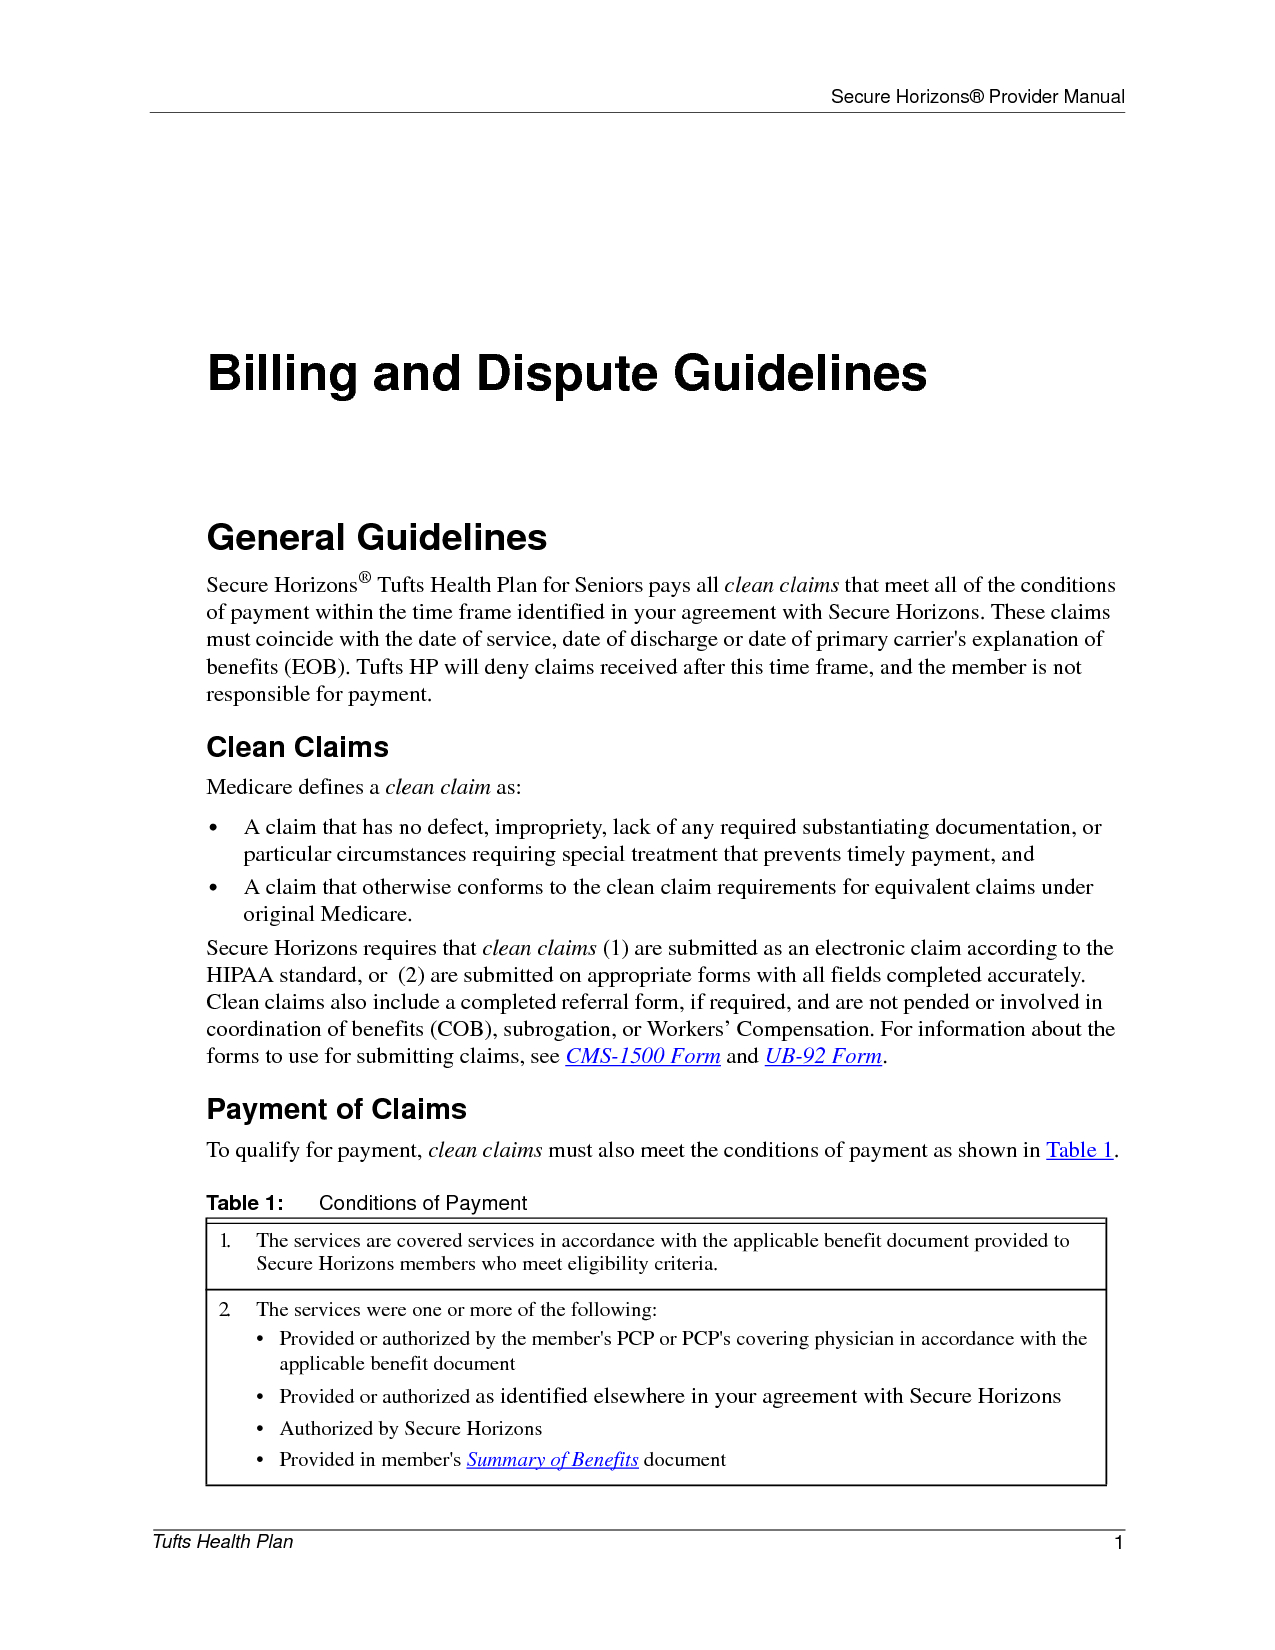 Debt Dispute Letter Template - How to Write A Dispute Letter for A Bill Image Collections Letter